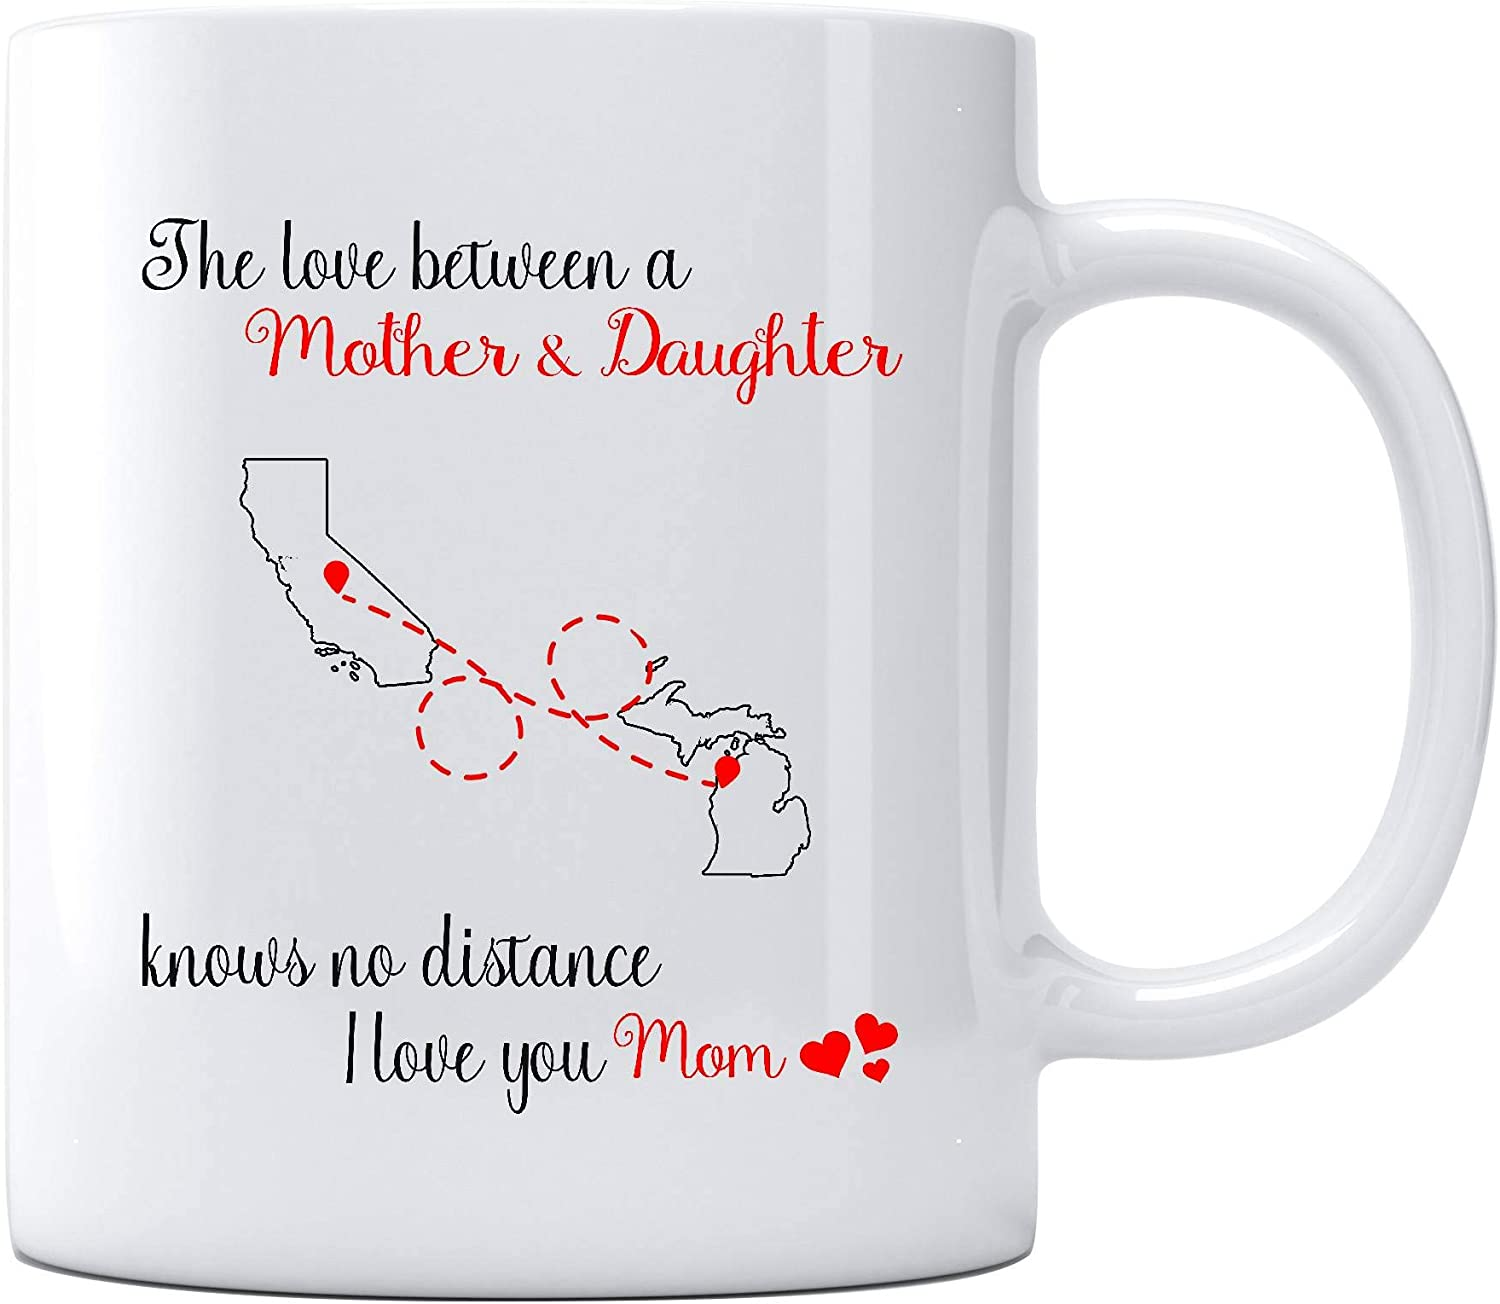 amazon com funny distance state california michigan the love between mother and daughter knows no distance mothers day gifts for mom from daughter unique mother s day gag gift mug 11oz coffee cups funny distance state california michigan the love between mother and daughter knows no distance mothers day gifts for mom from daughter unique